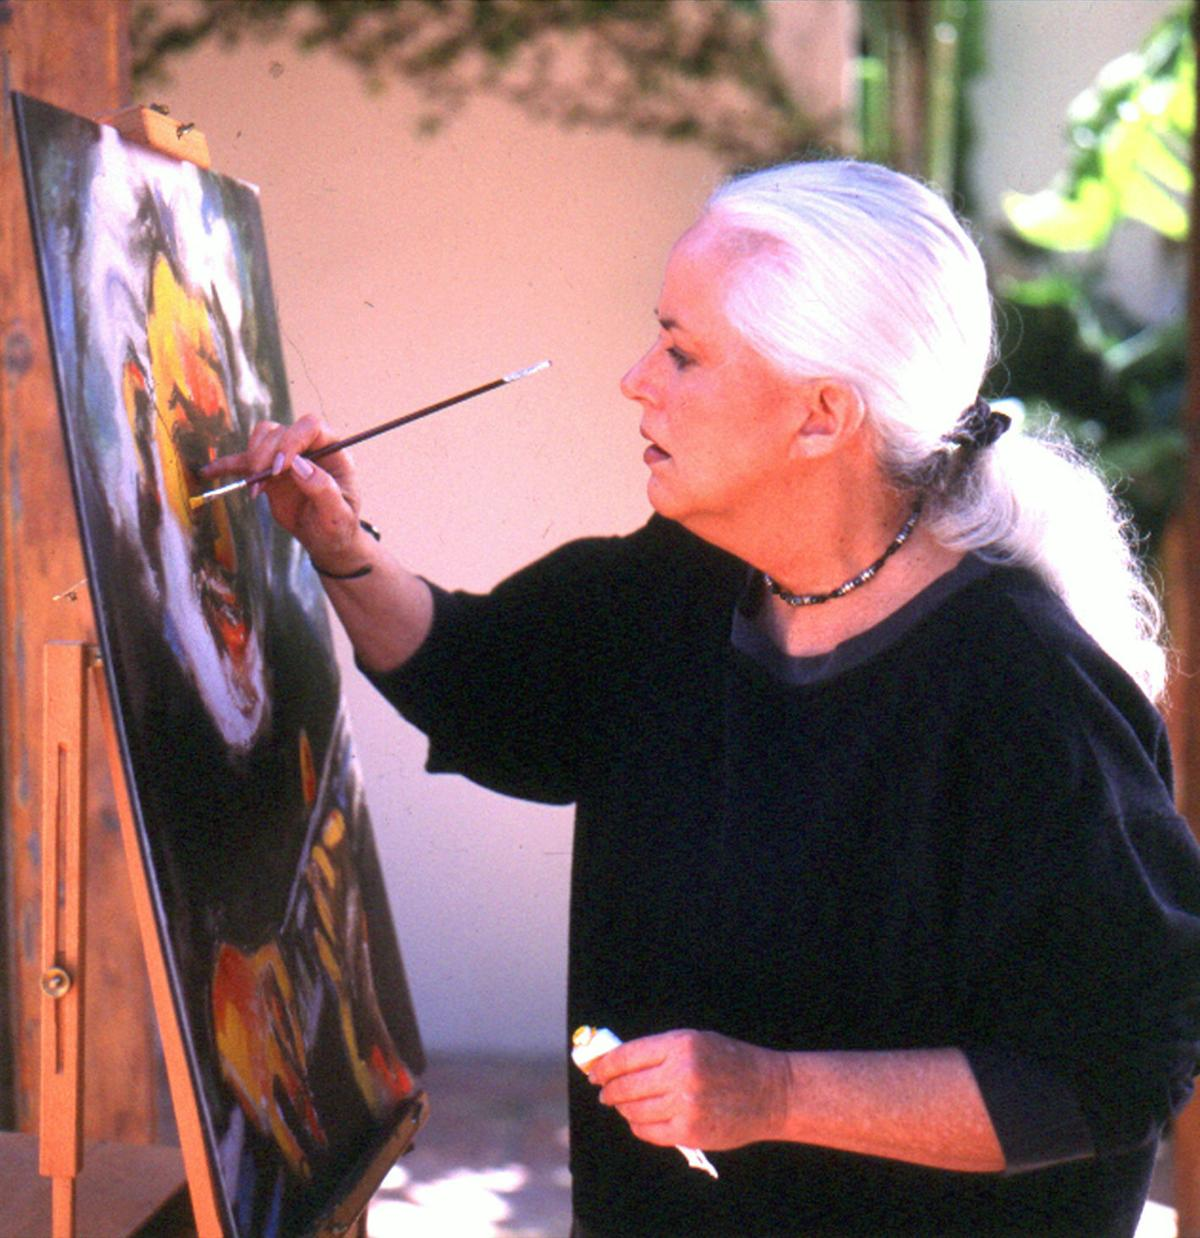 Grace Slick while painting